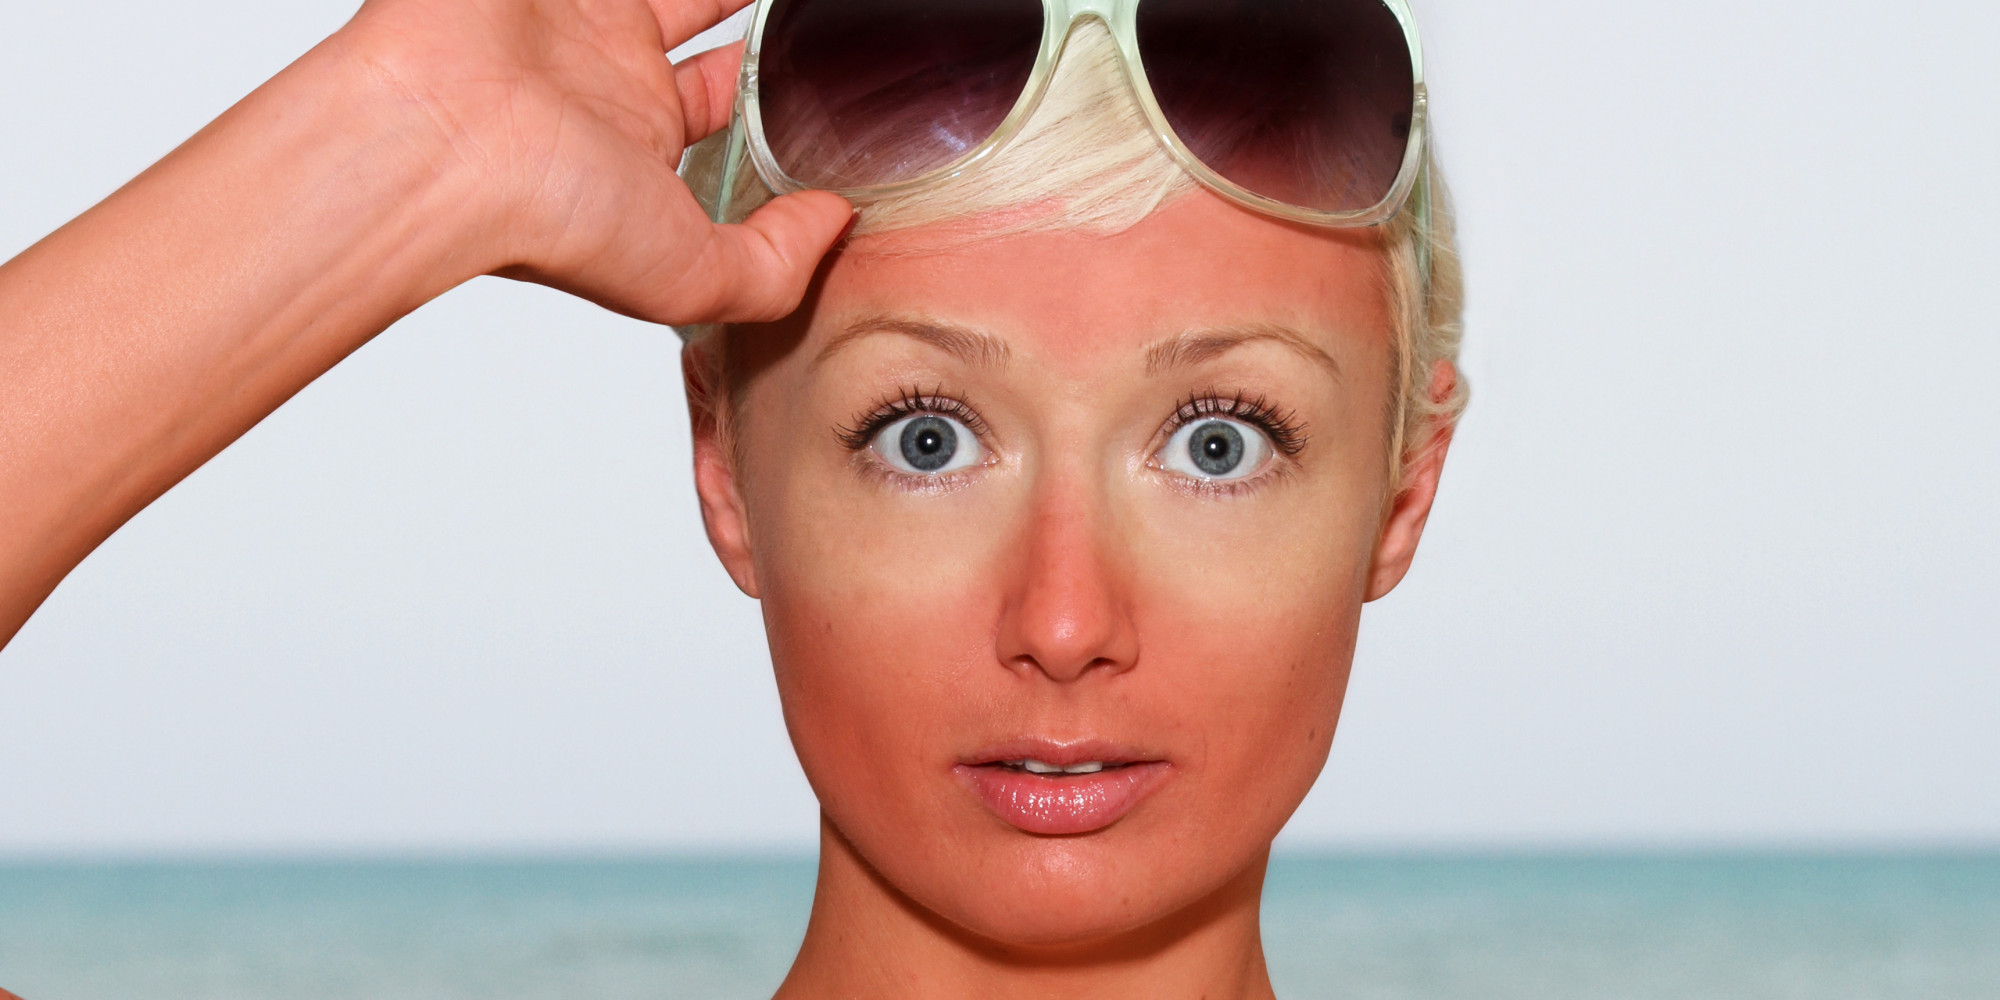 Do You Know How To Hide A Sunburn With Your Makeup?